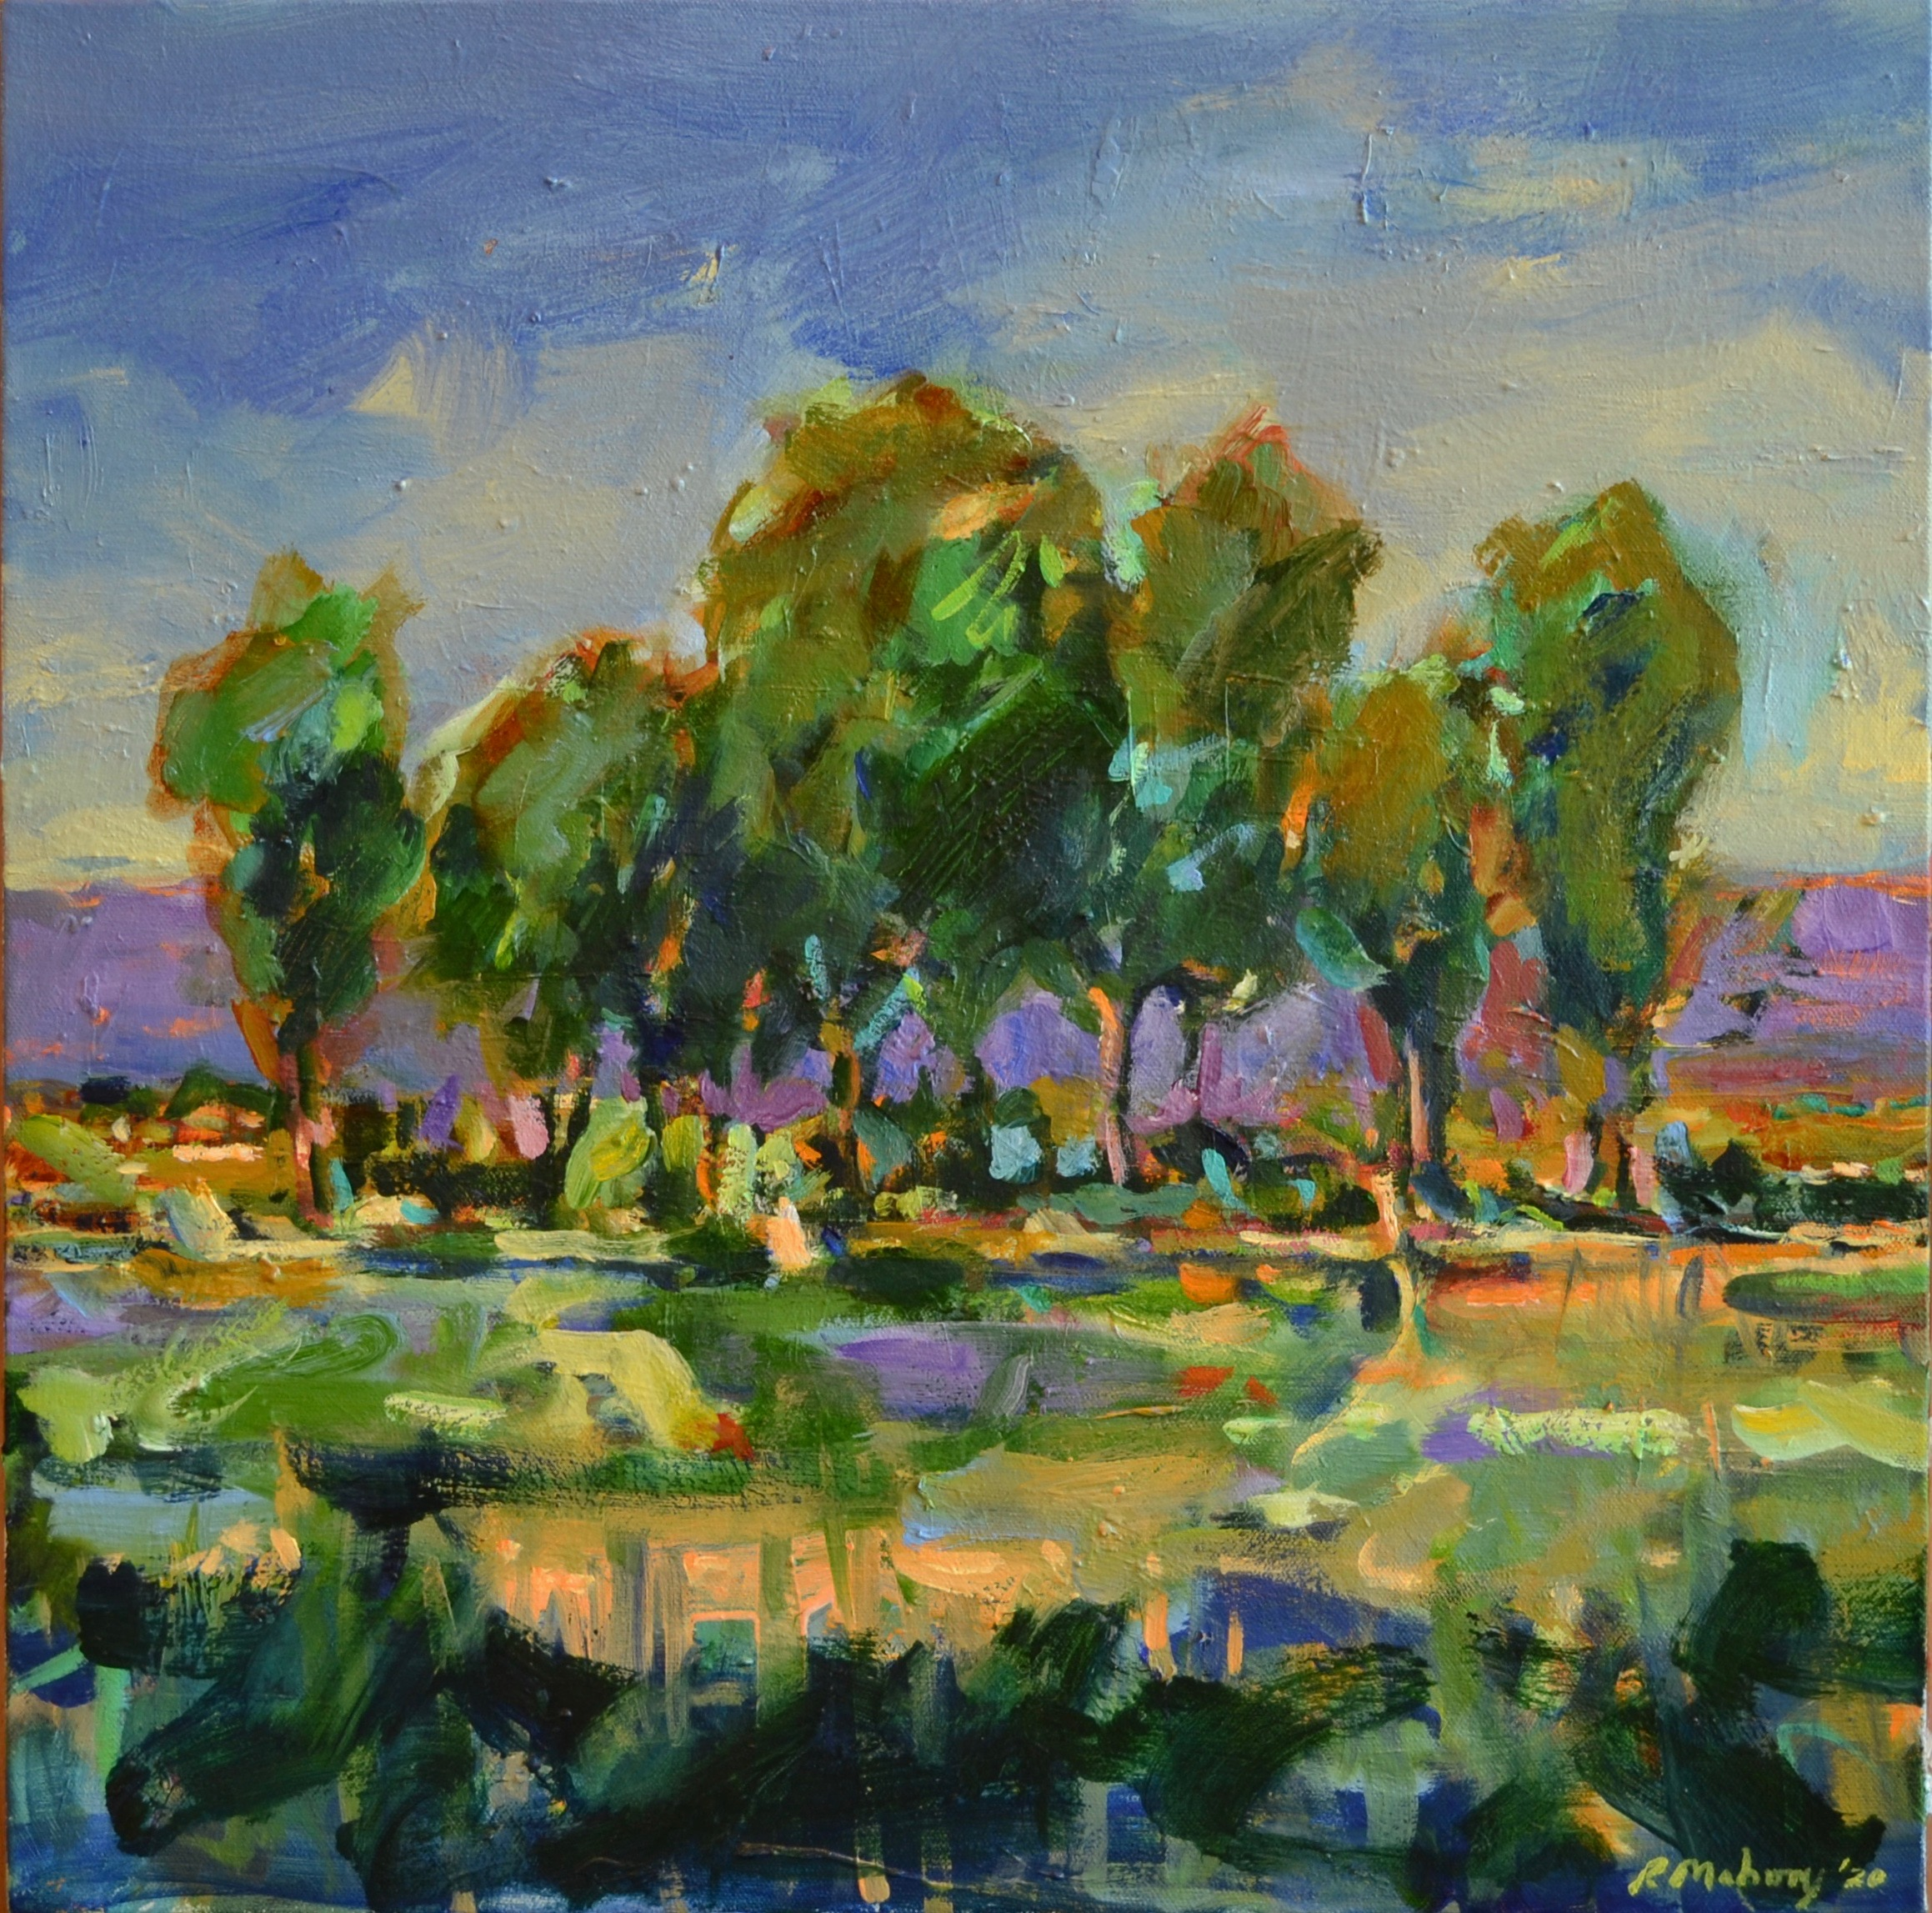 "Pat Mahony - Six Trees - 2020 - Oil on Canvas - 20"" x 20"""